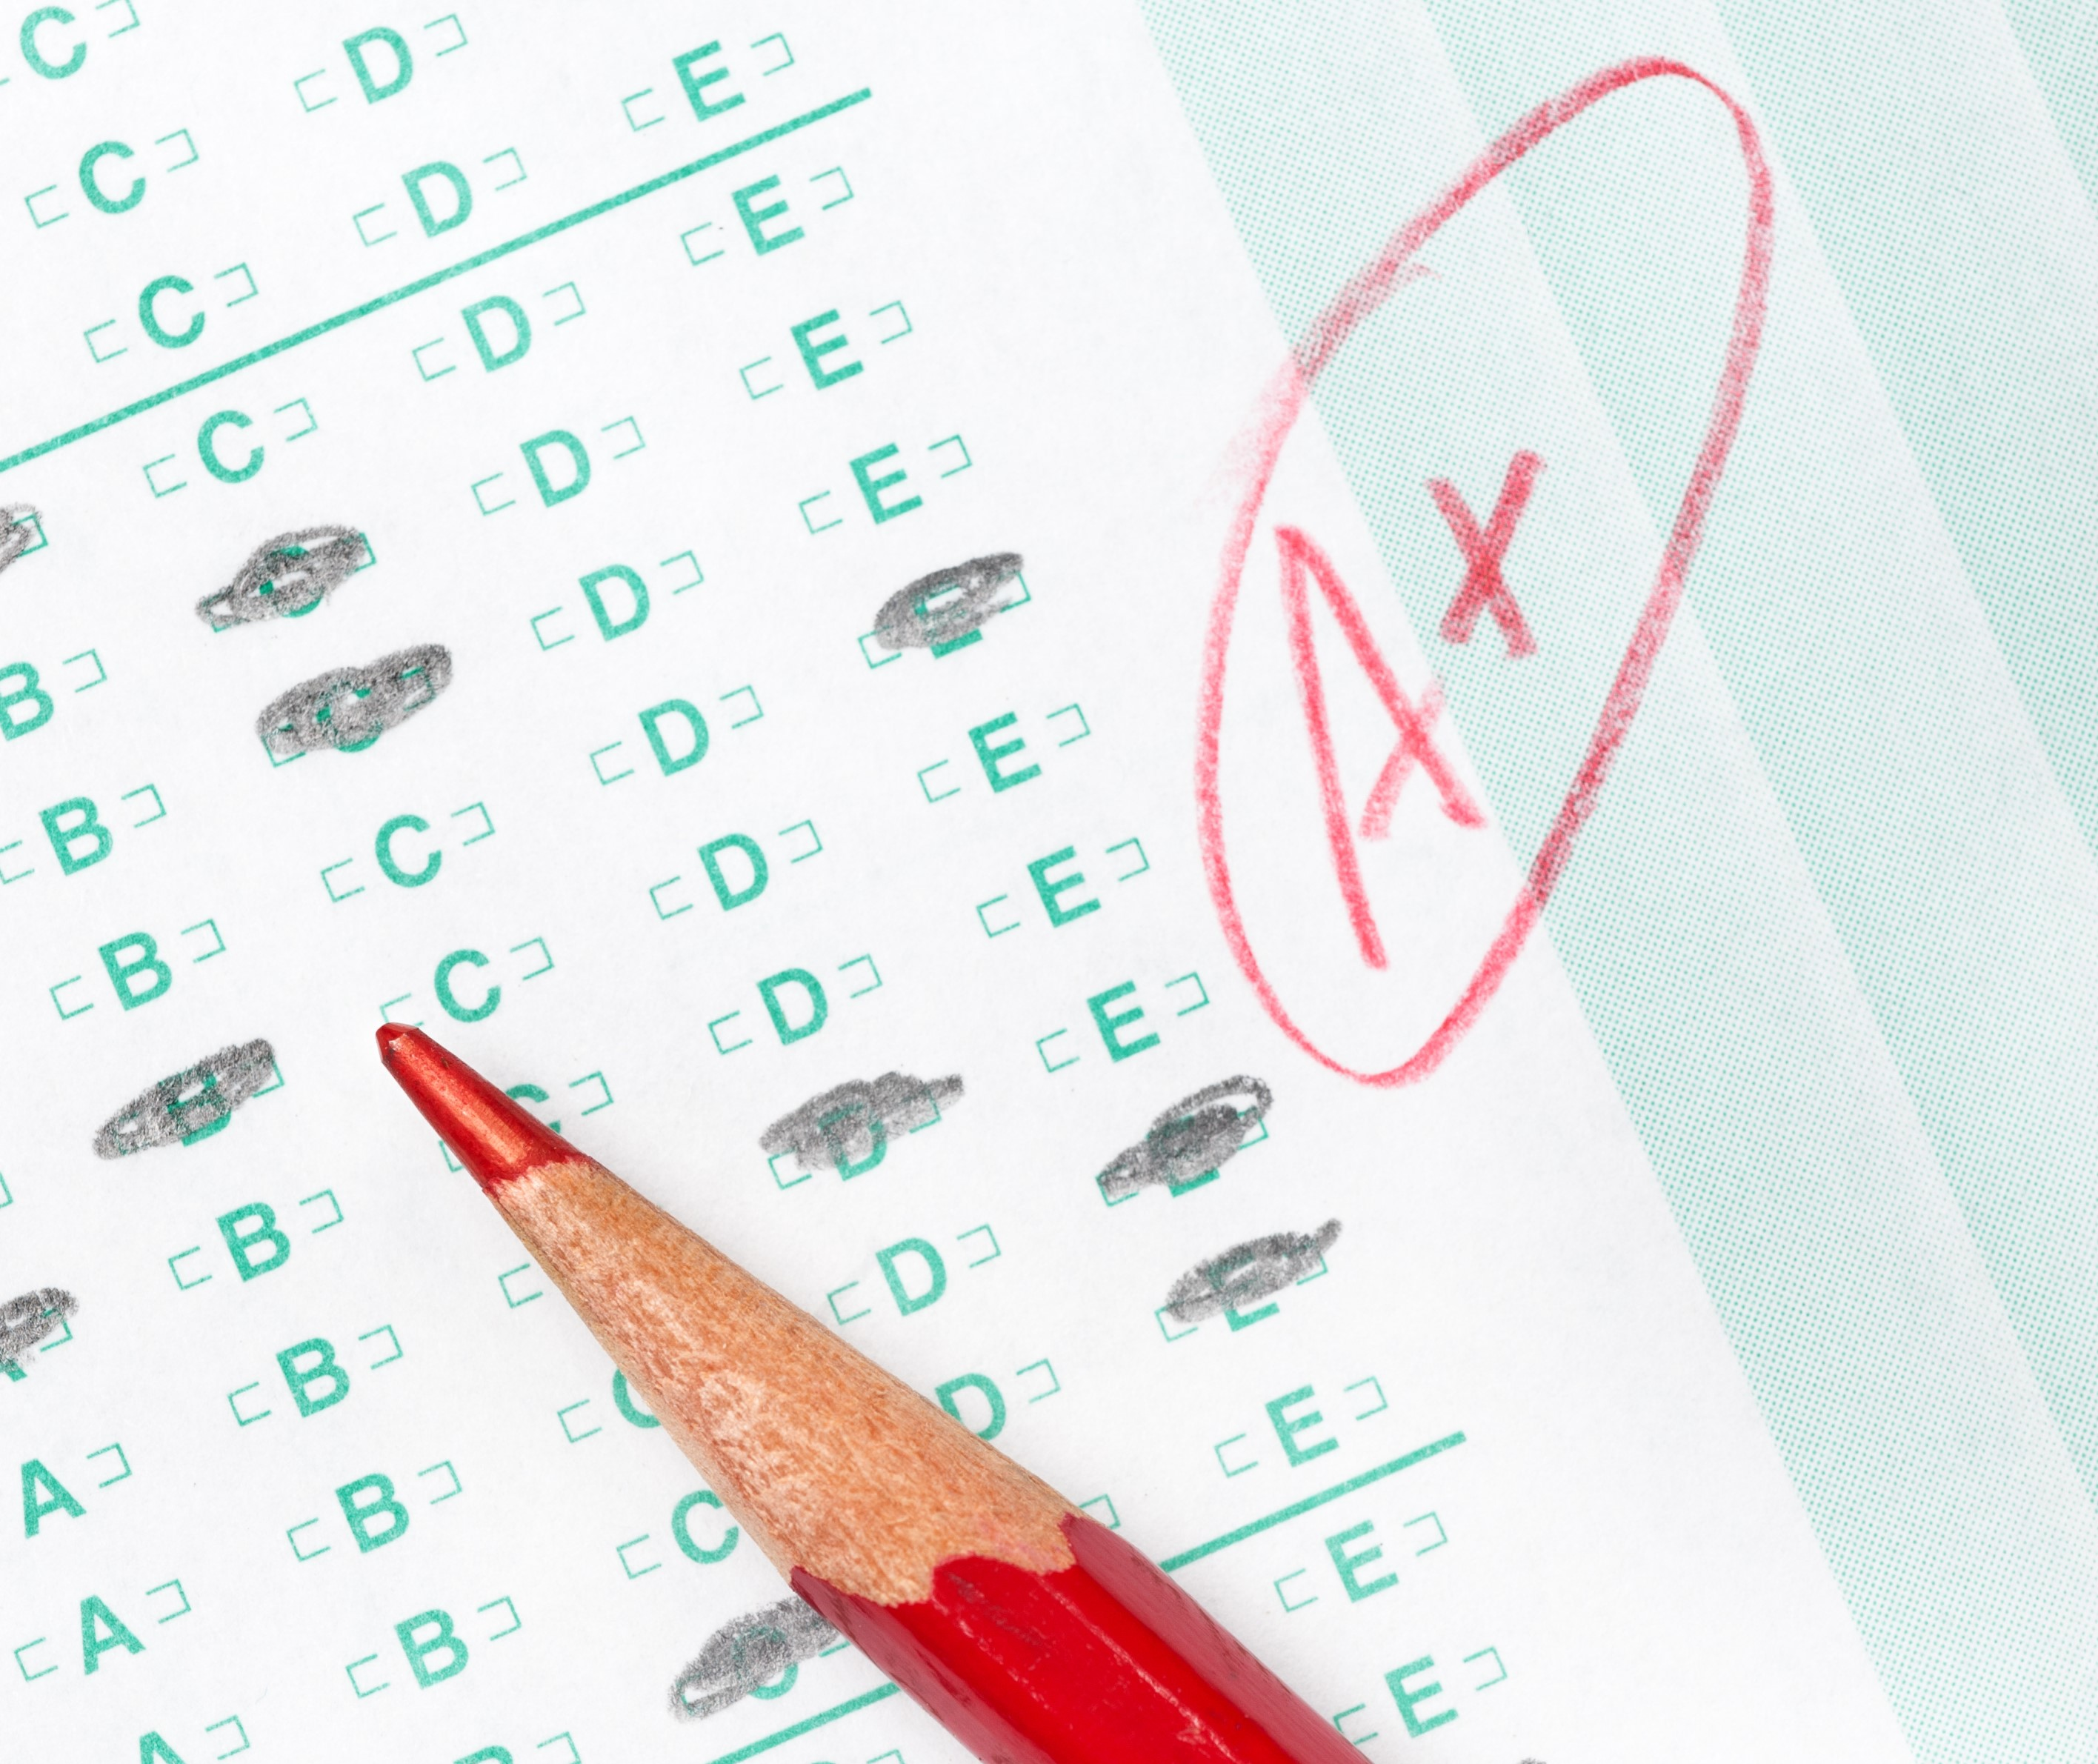 Assessment (in many forms, not just old-school scantron sheets) is integral to learning